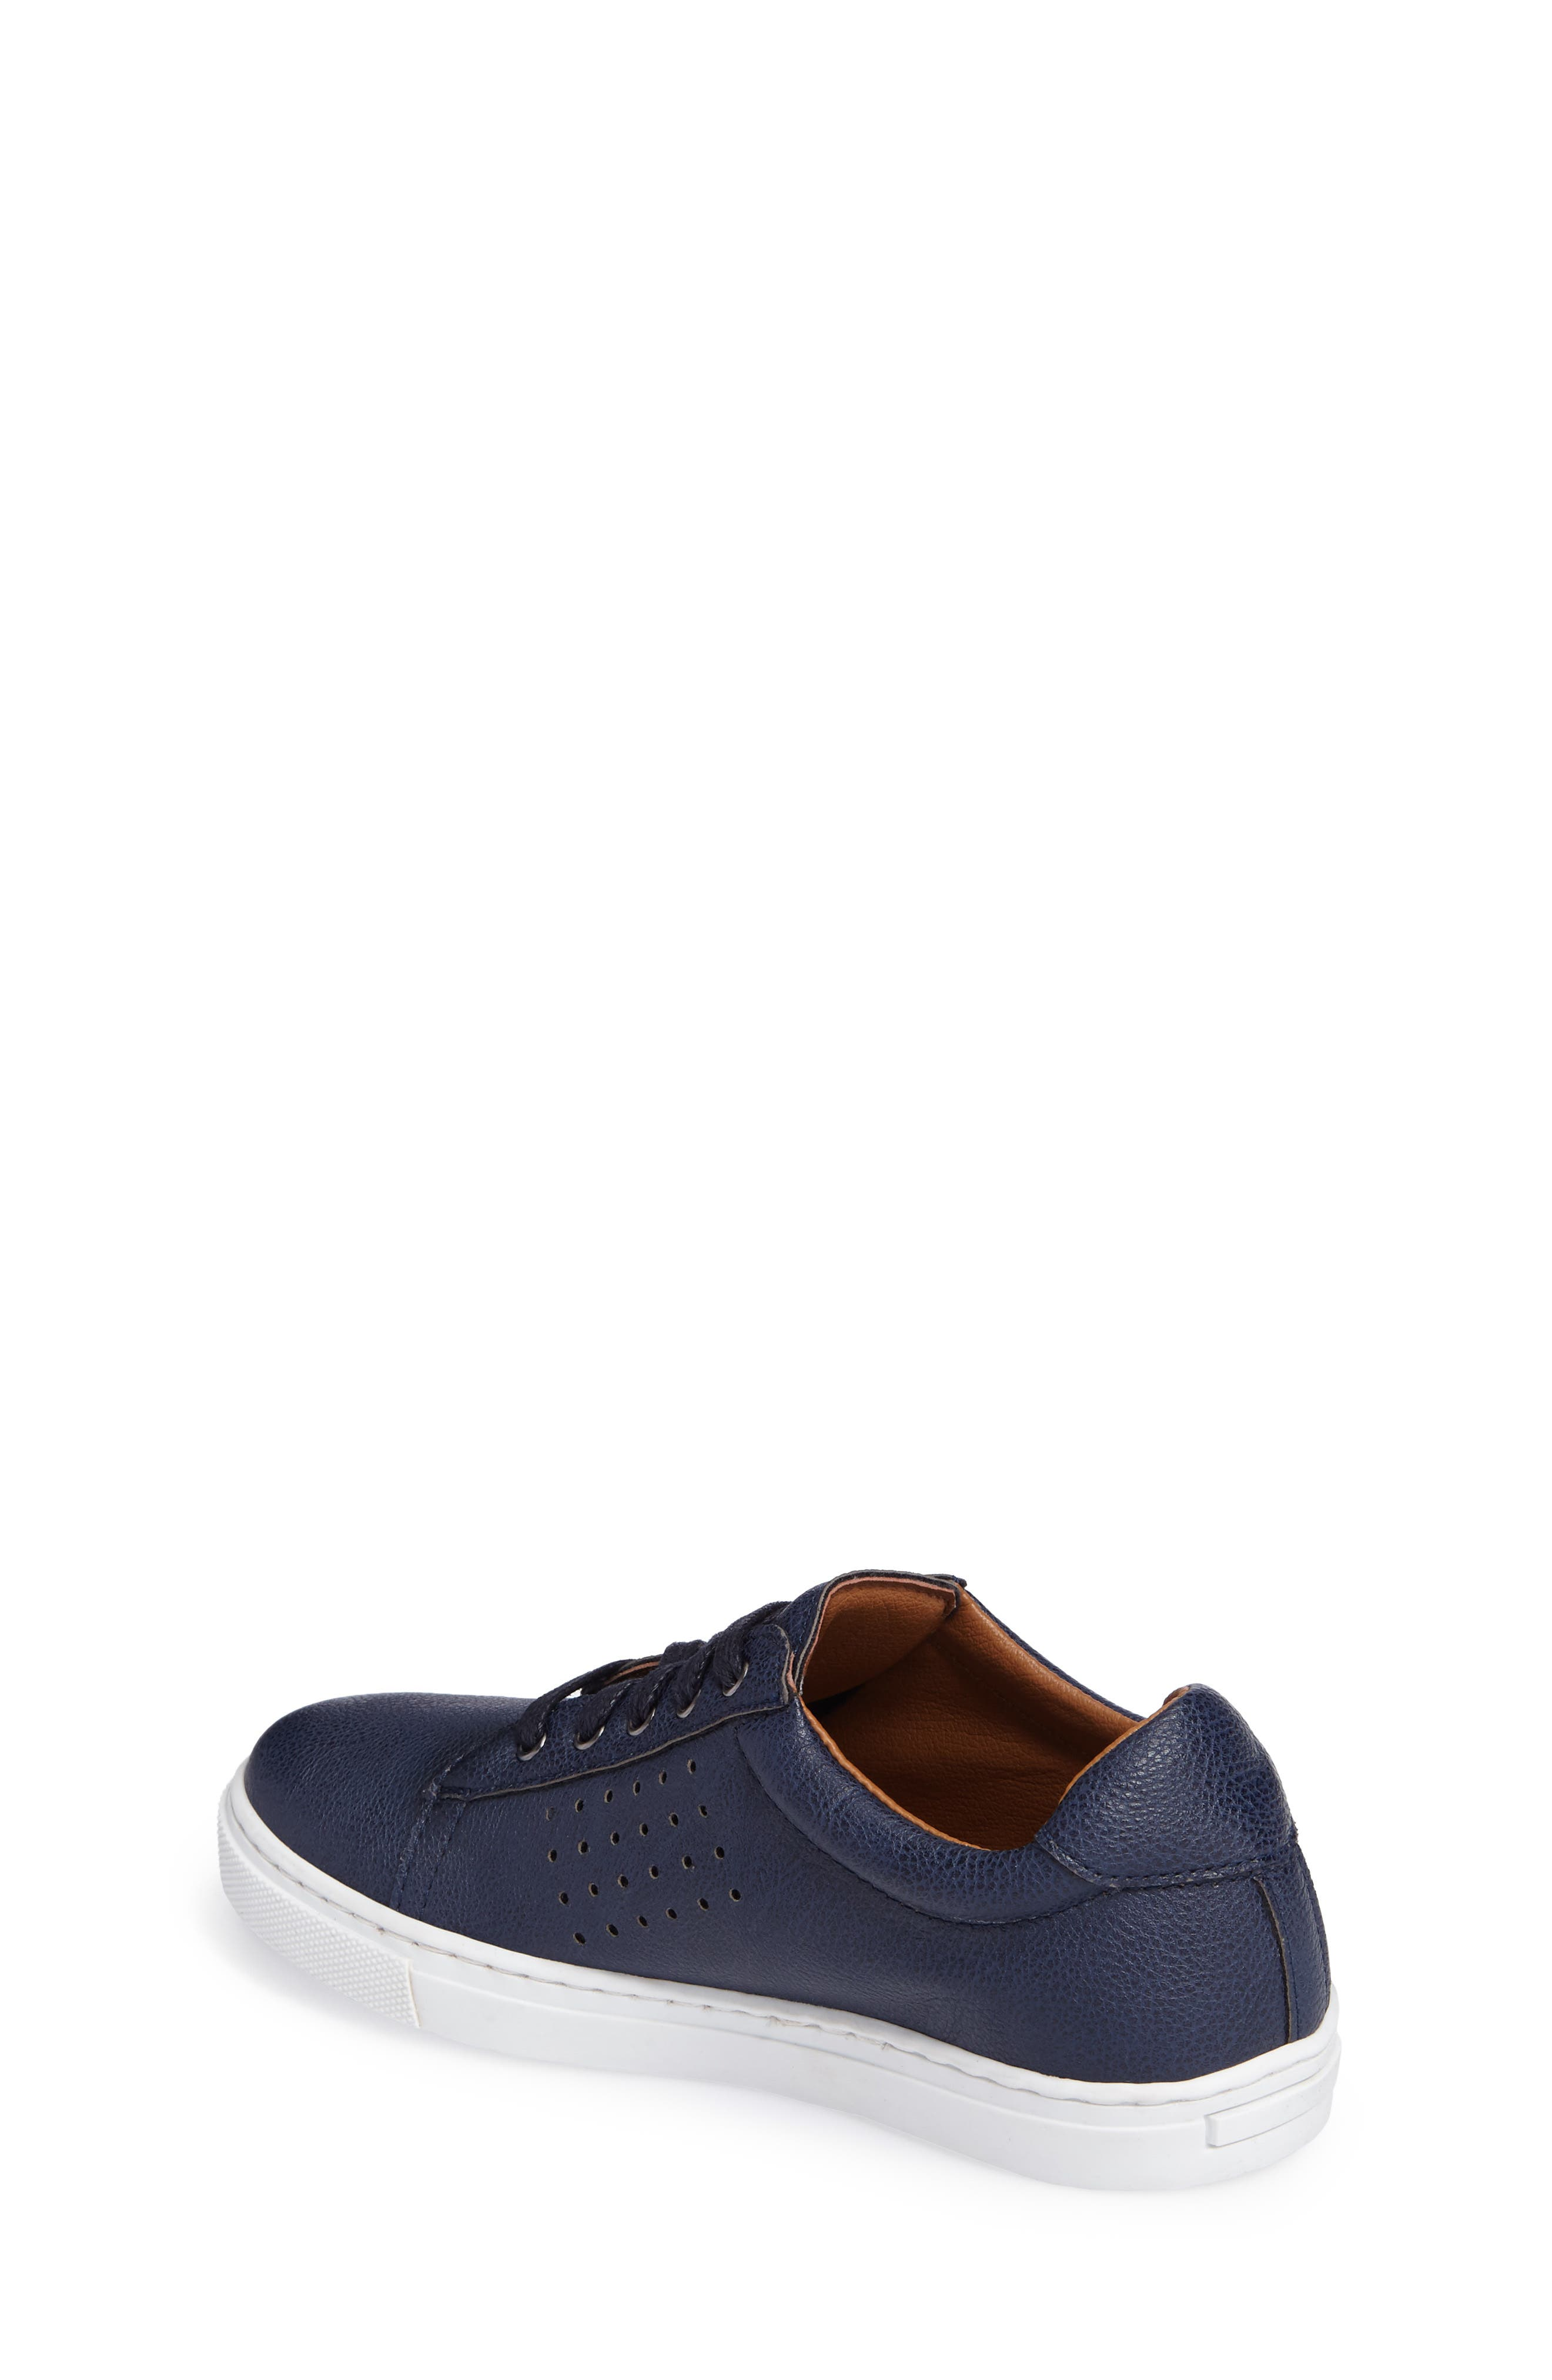 Grafte Perforated Sneaker,                             Alternate thumbnail 2, color,                             Navy